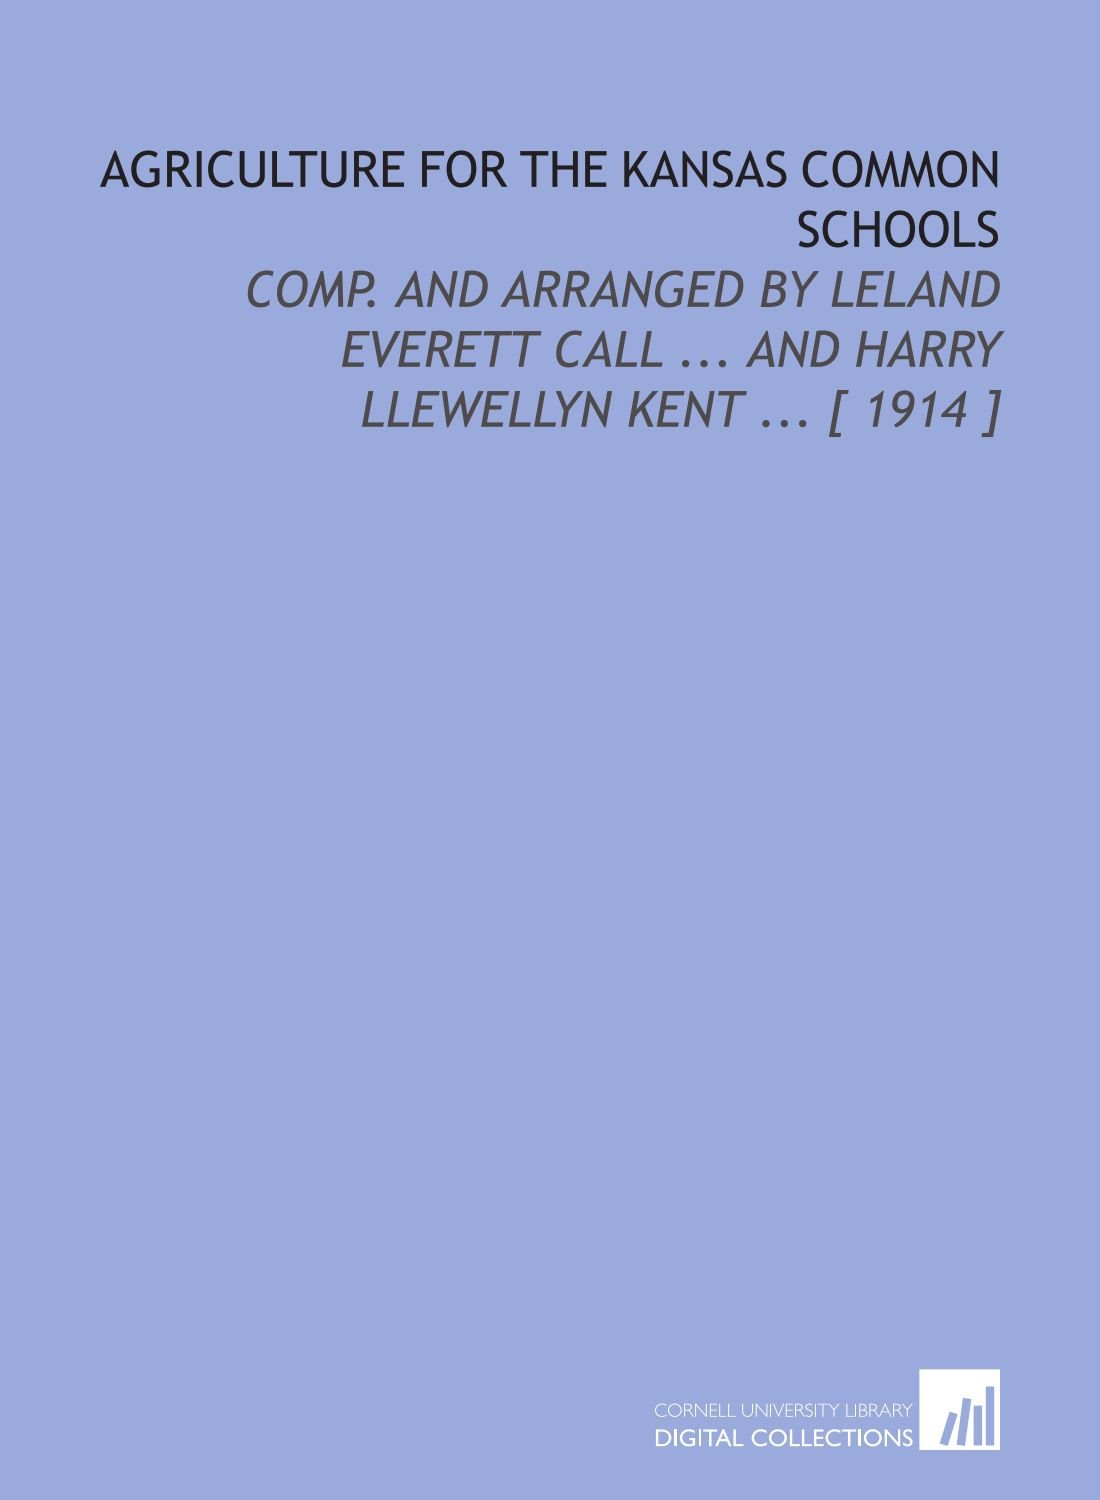 Download Agriculture for the Kansas Common Schools: Comp. And Arranged by Leland Everett Call ... And Harry Llewellyn Kent ... [ 1914 ] PDF Text fb2 ebook